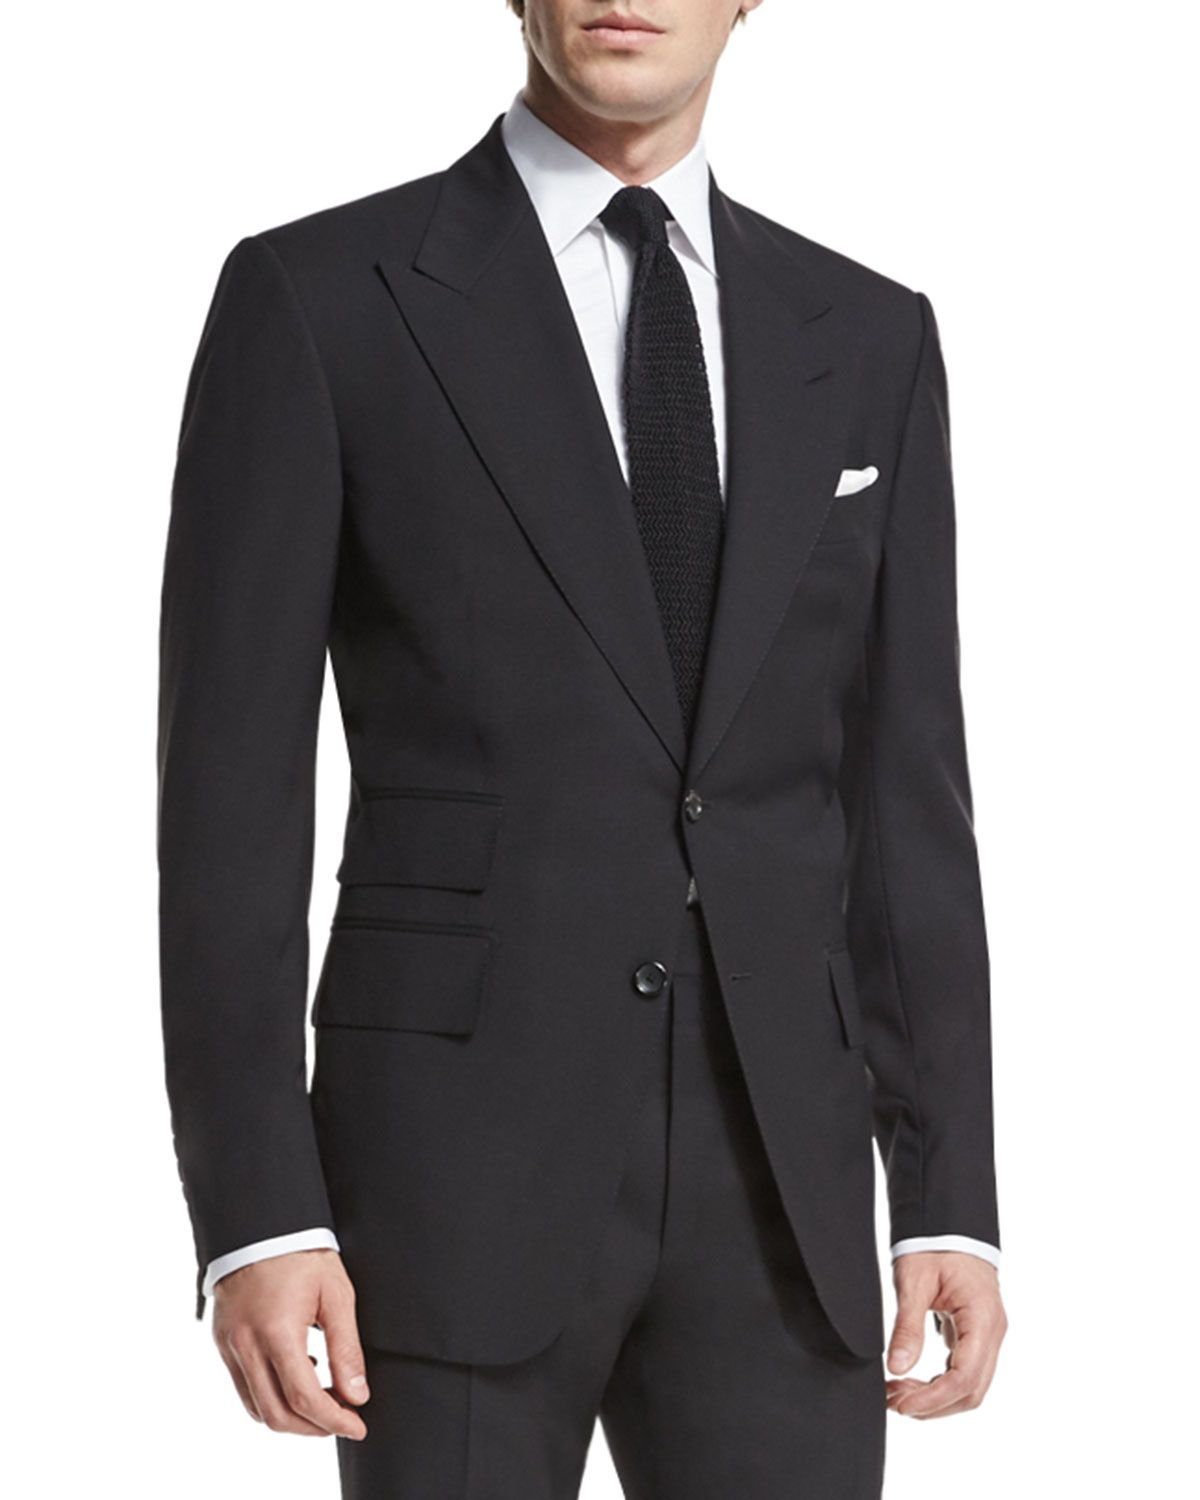 TOM FORD Windsor Base PeakLapel TwoPiece Suit, Black is part of Suits - Shop Windsor Base PeakLapel TwoPiece Suit, Black from TOM FORD at Neiman Marcus, where you'll find free shipping on the latest in fashion from top designers